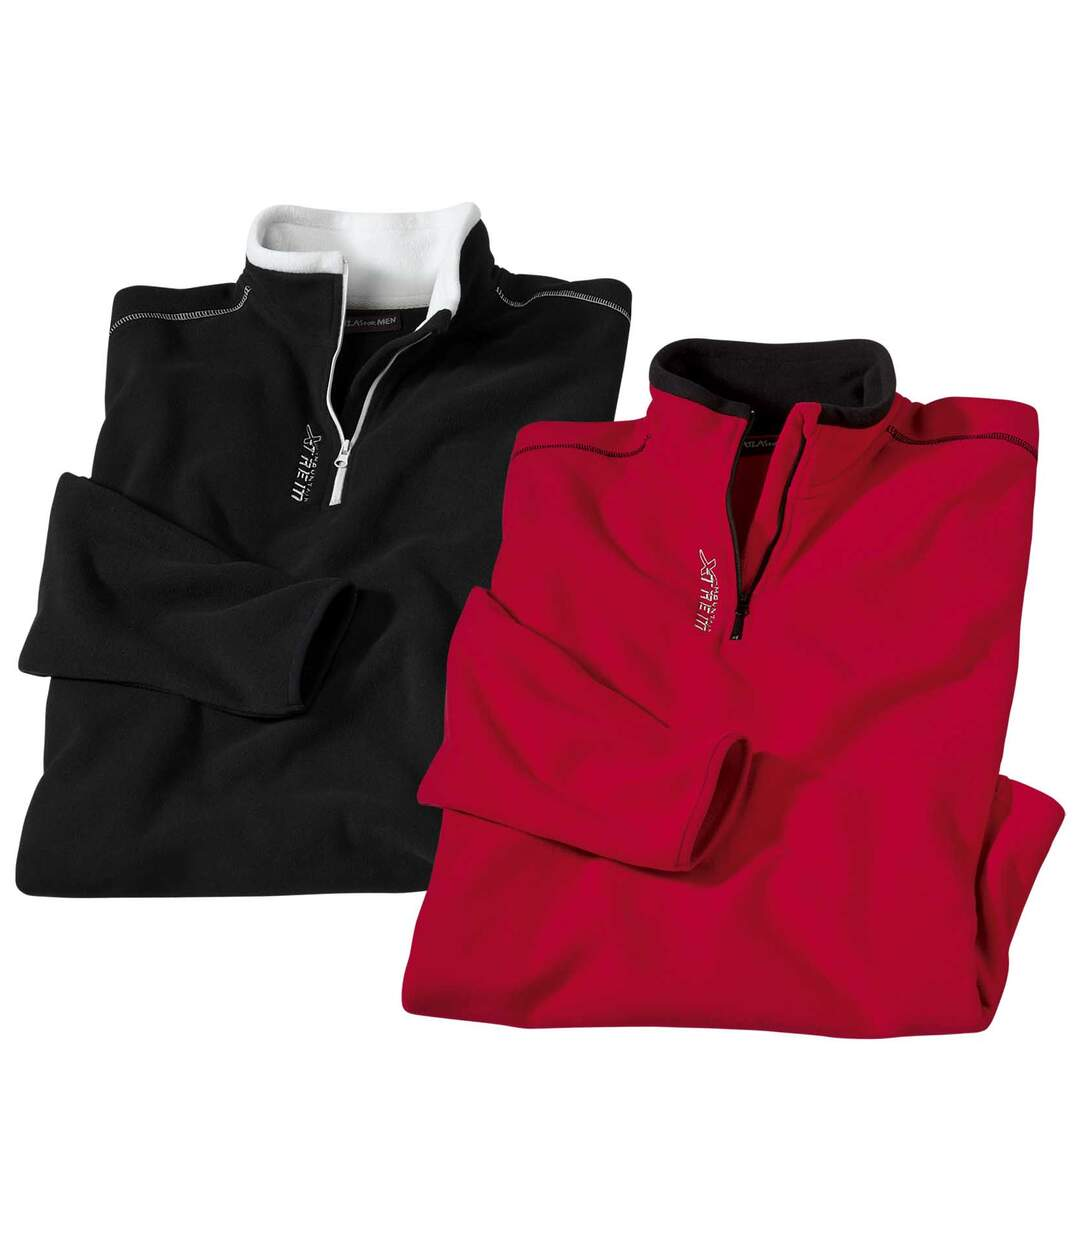 Set van 2 microfleece sweaters XTREM